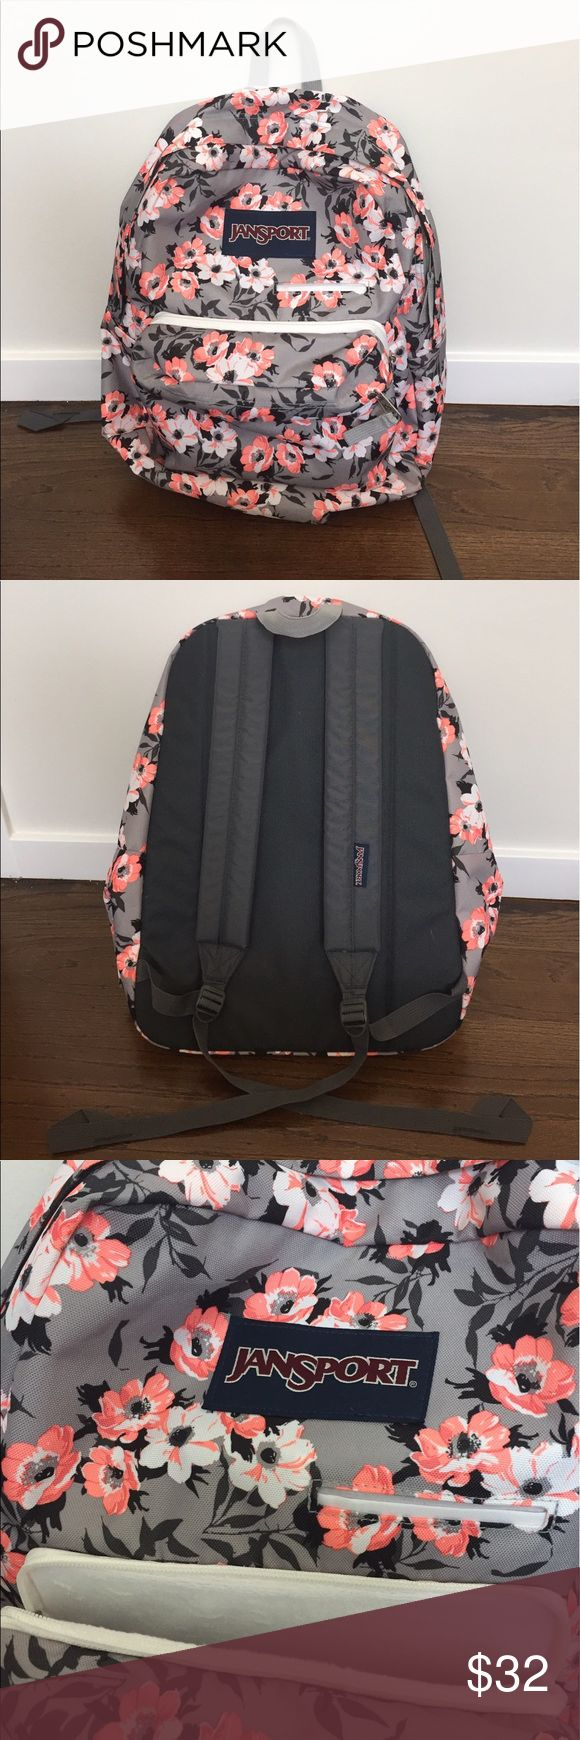 Jansport Backpack. Grey and pink Light grey and pink flower design. Has one large pocket with a laptop section. Has a phone pocket and iPad pocket lined with soft fabric. Front most pocket for pens and smaller items. In perfect condition. Bought new and was planning on using it for work only i thought the colors wouldn't be quite so bright. I absolutely love the design but I just dont find the need to use it as much. Perfect for students and in perfect condition. Jansport Bags Backpacks